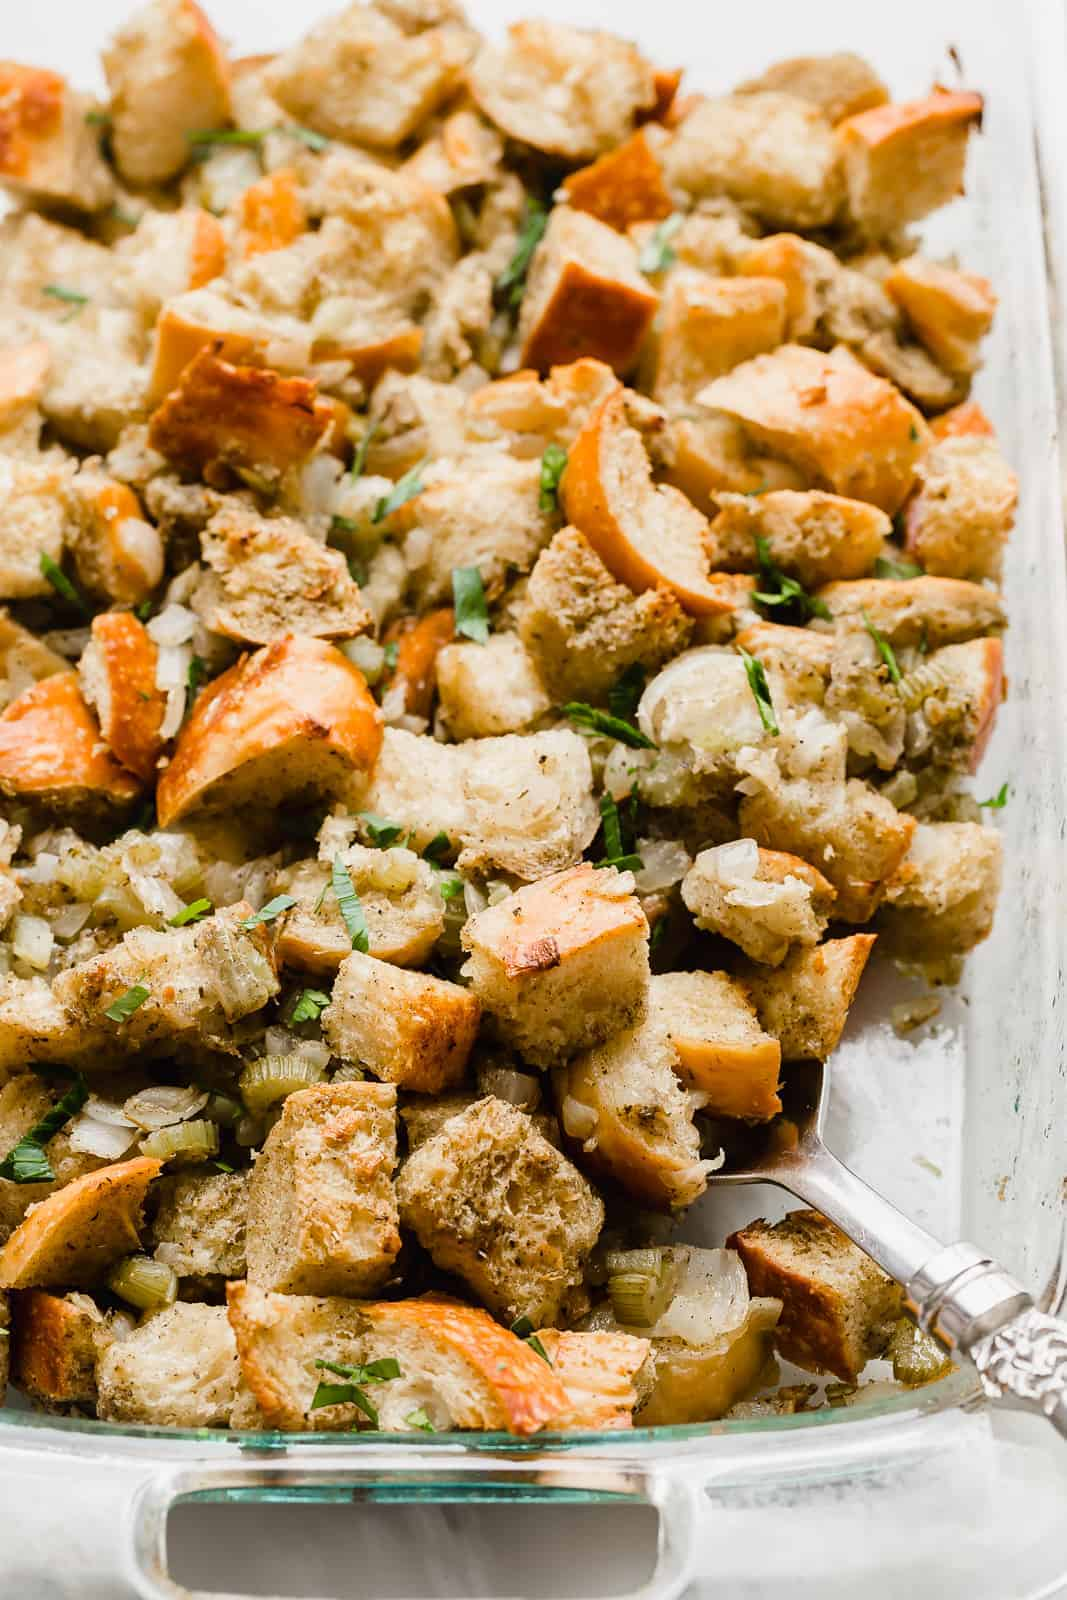 Homemade Thanksgiving Stuffing in a casserole dish.